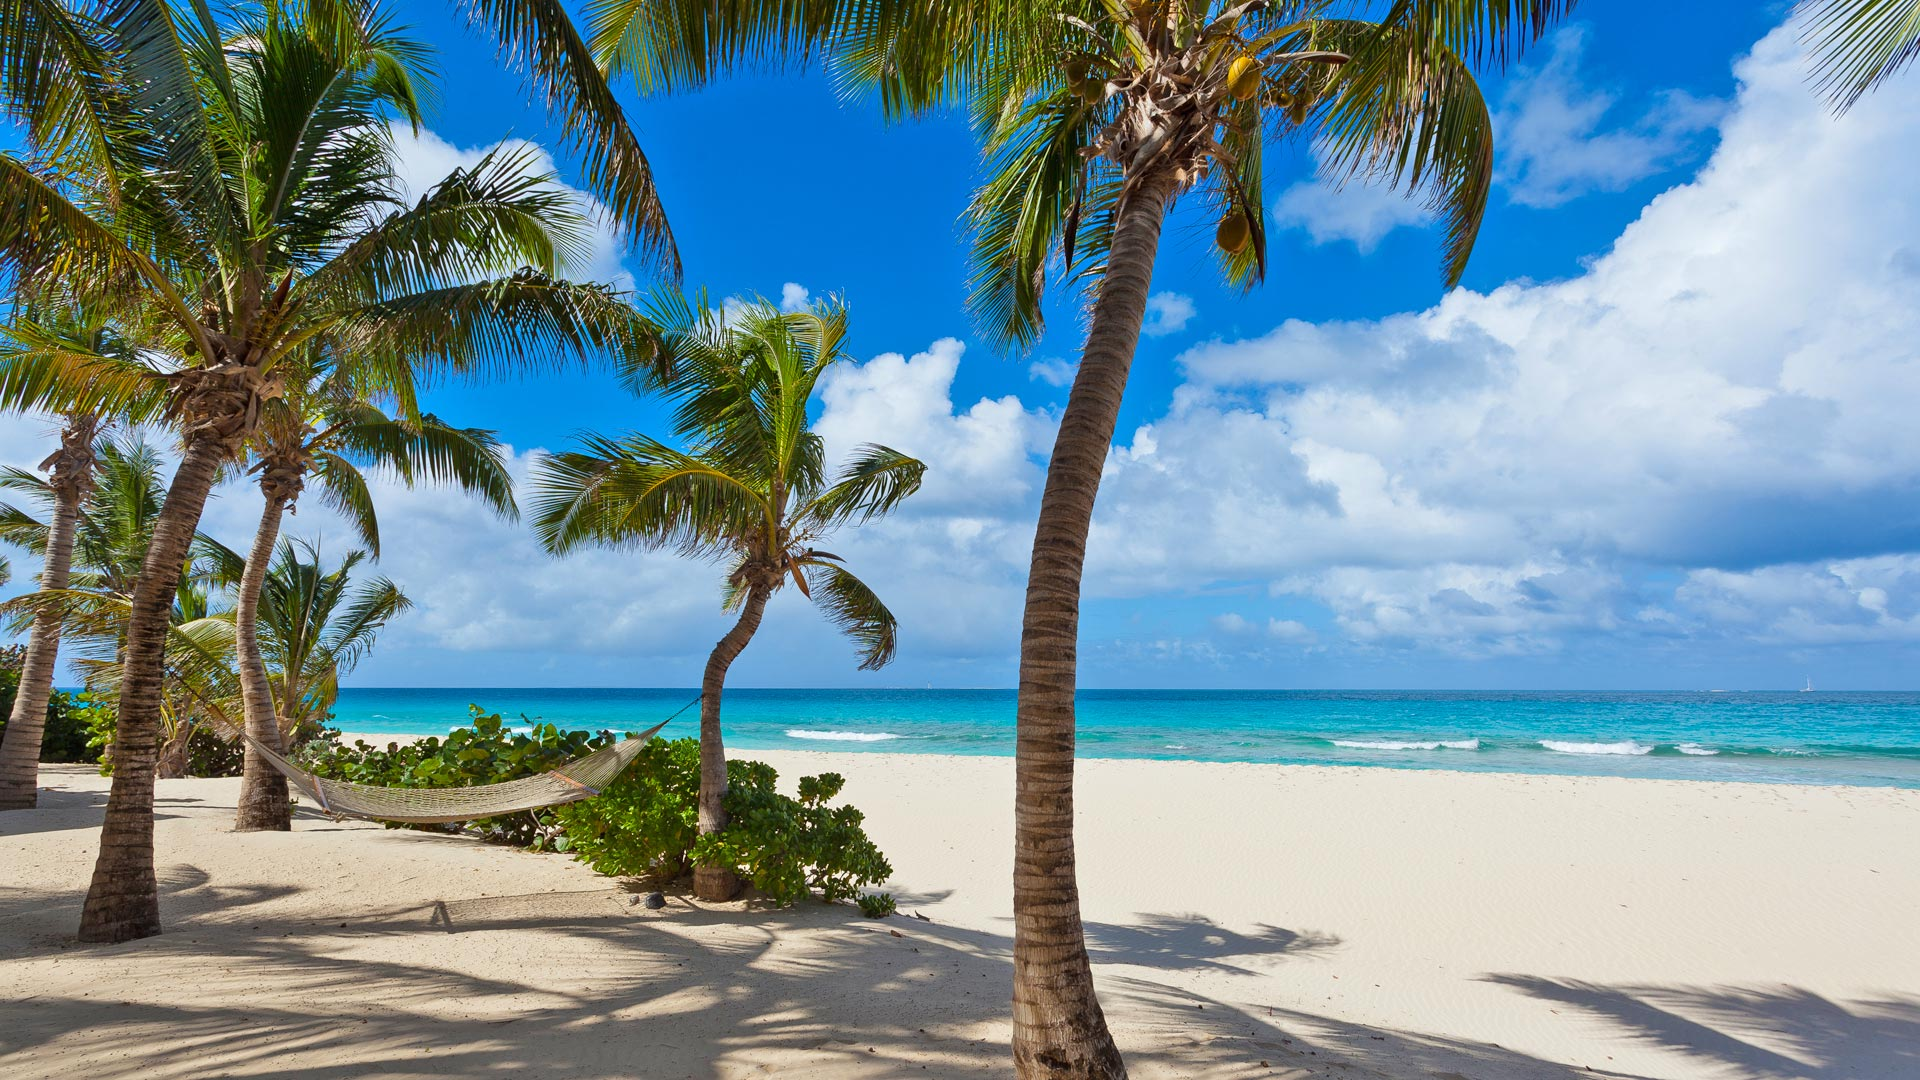 Anguilla offers secluded beaches for those seeking privacy